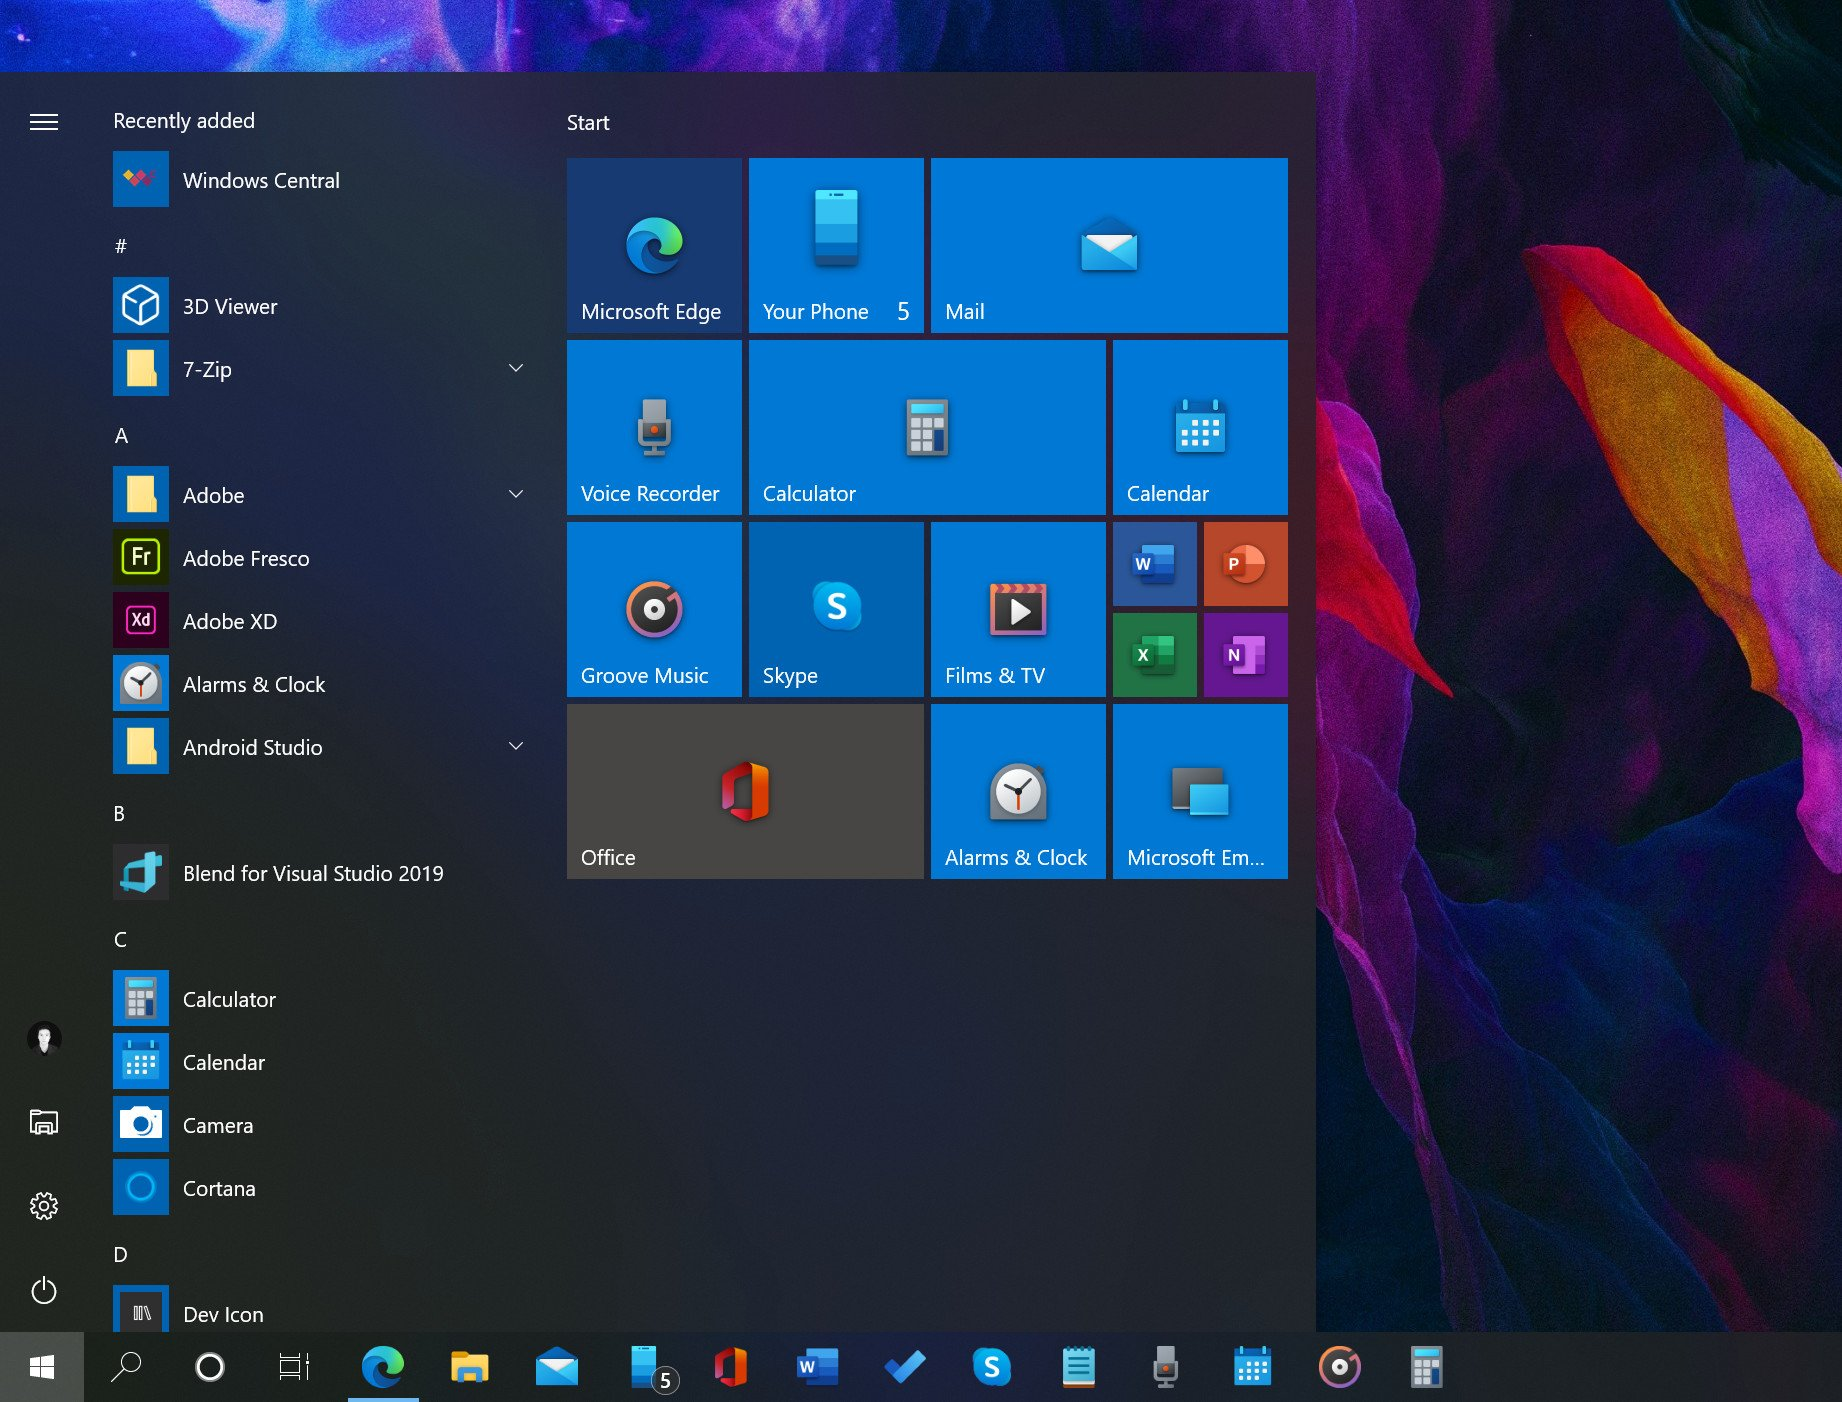 The new Windows 10 mail and calendar icons are now publicly available